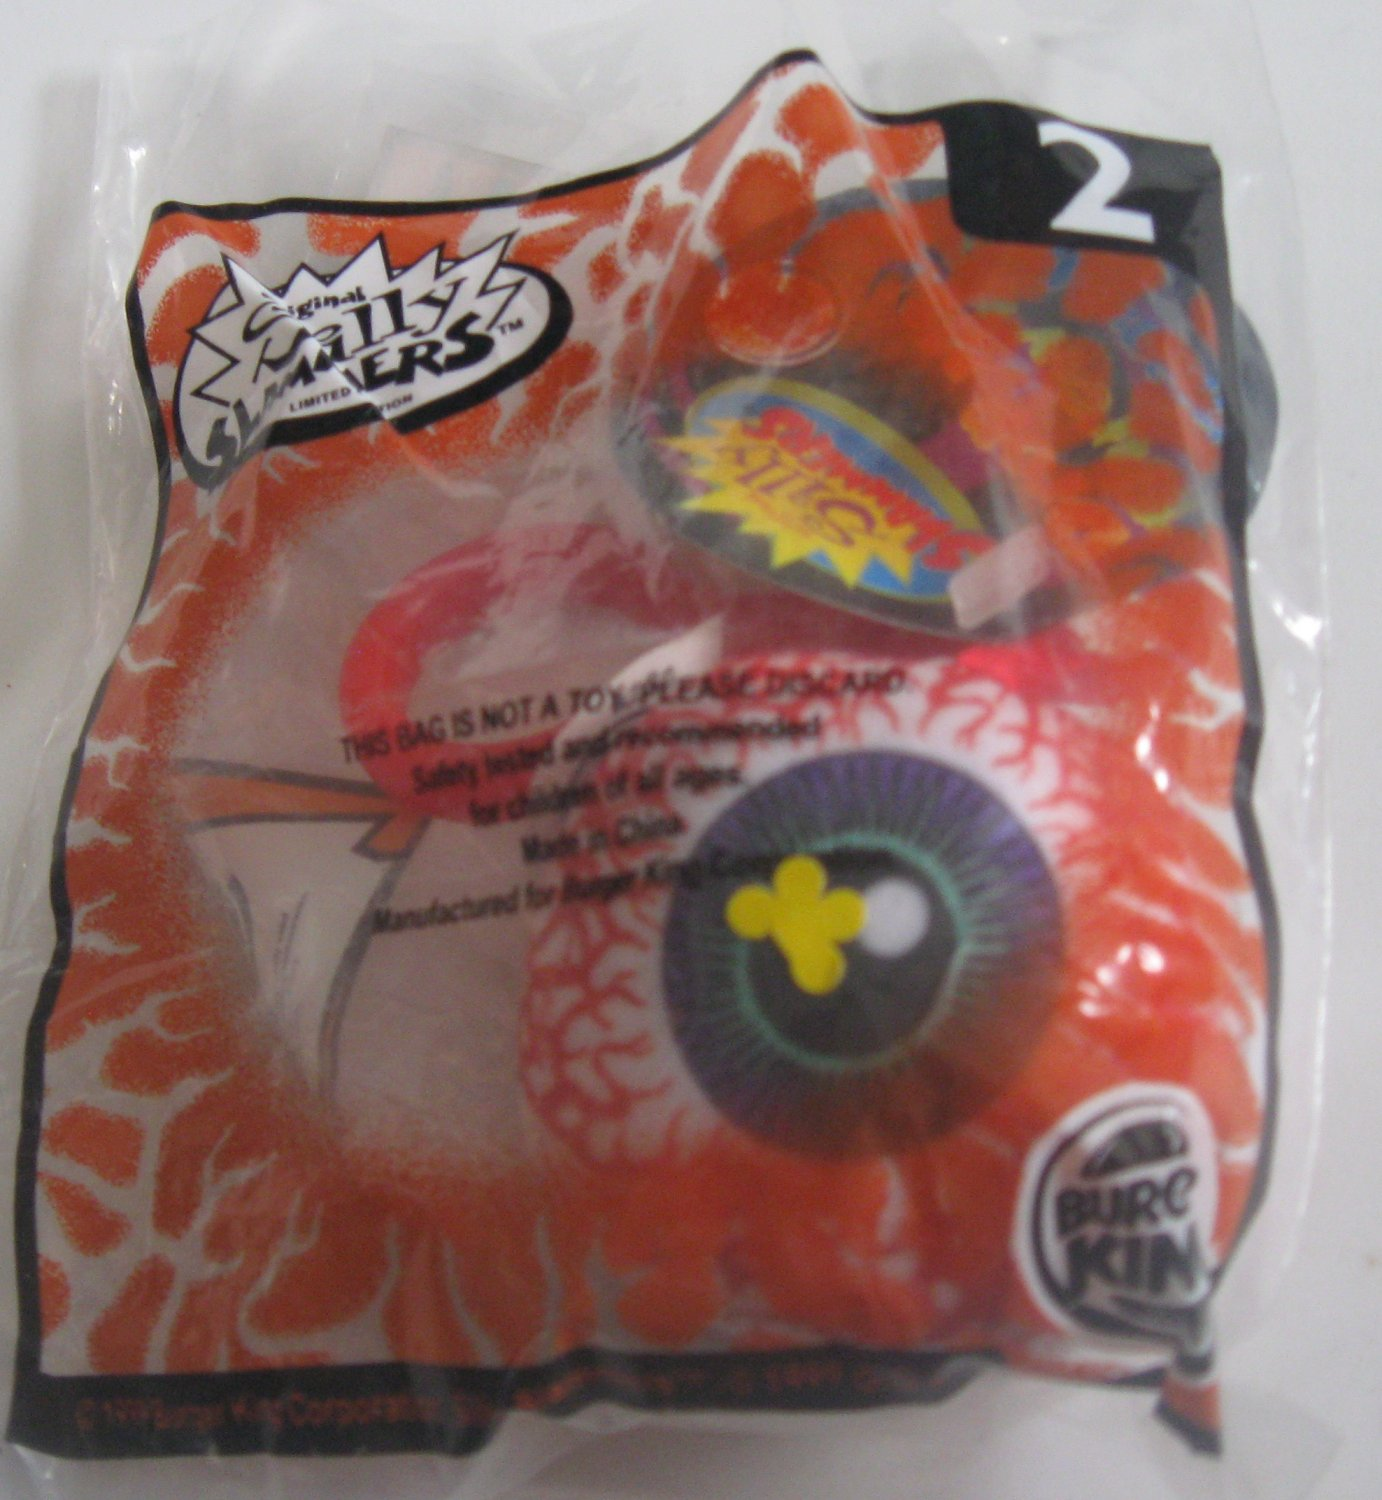 Burger King Kid's Meal Toy - Silly Slammers #2